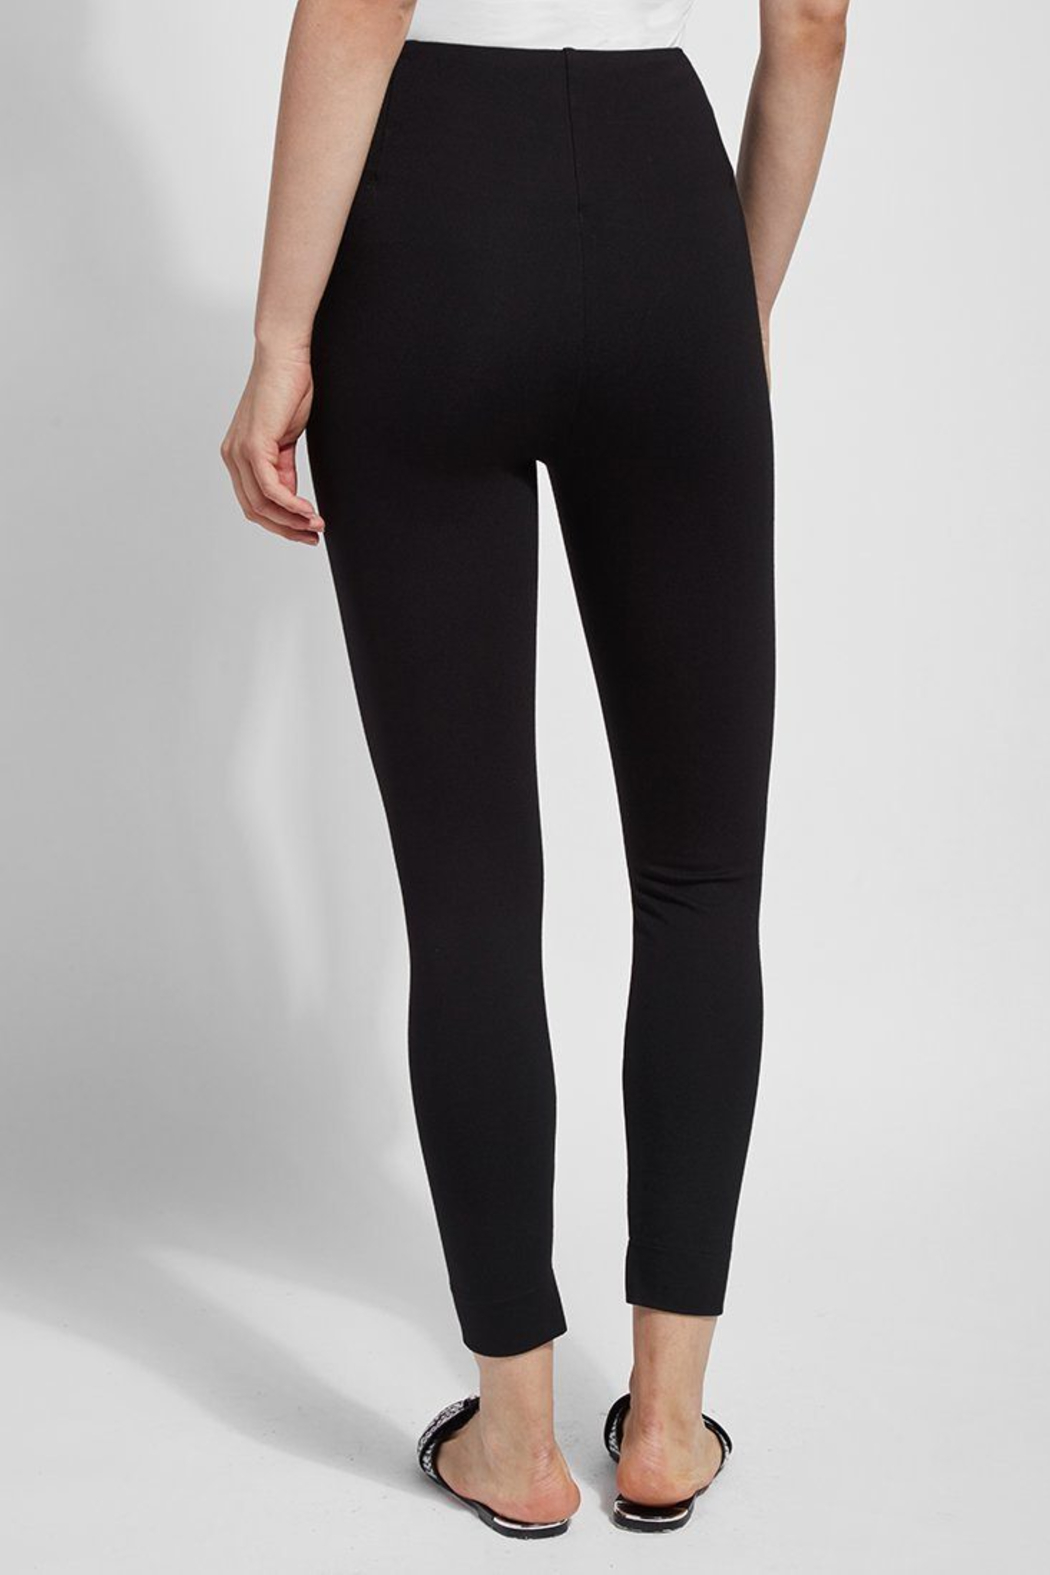 Lysse  Fennel Ankle Slit Legging - Back Cropped Image